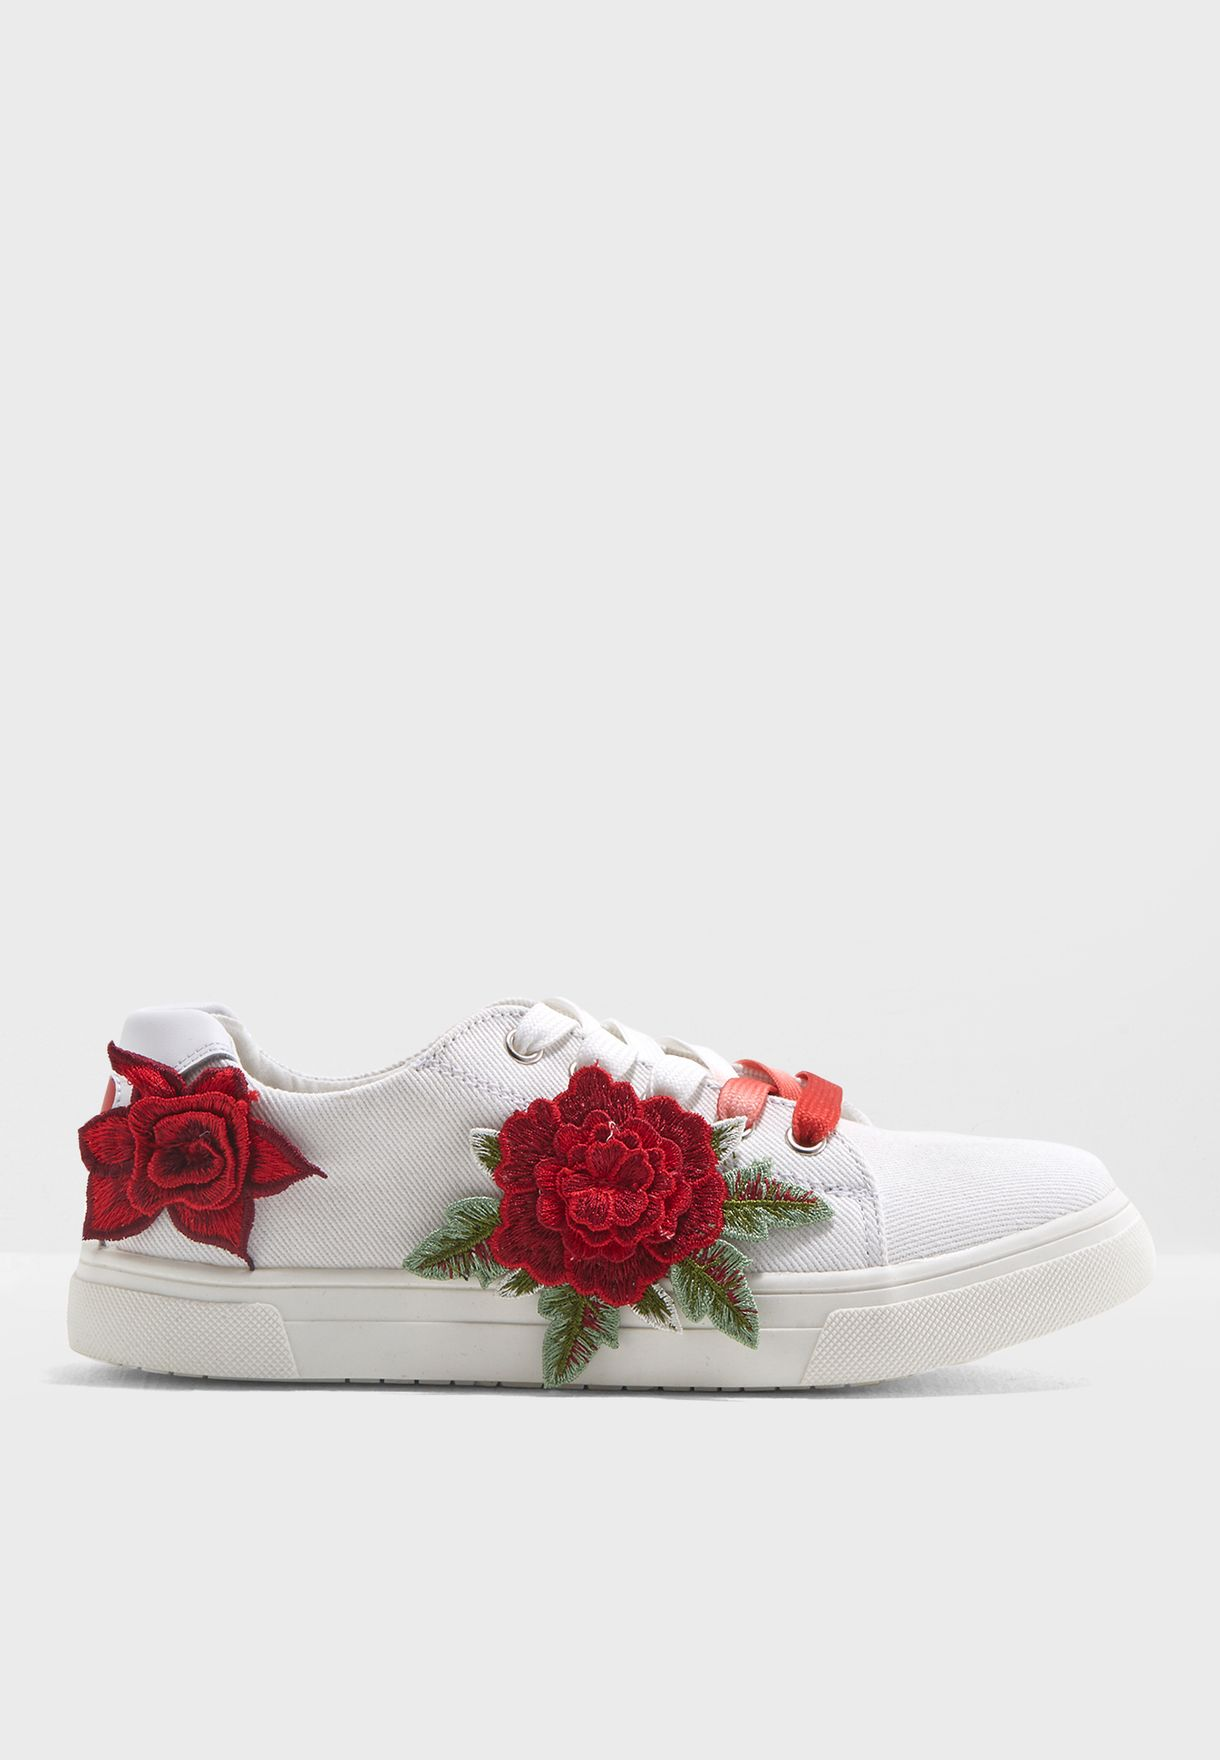 Teen Floral Printed Sneakers